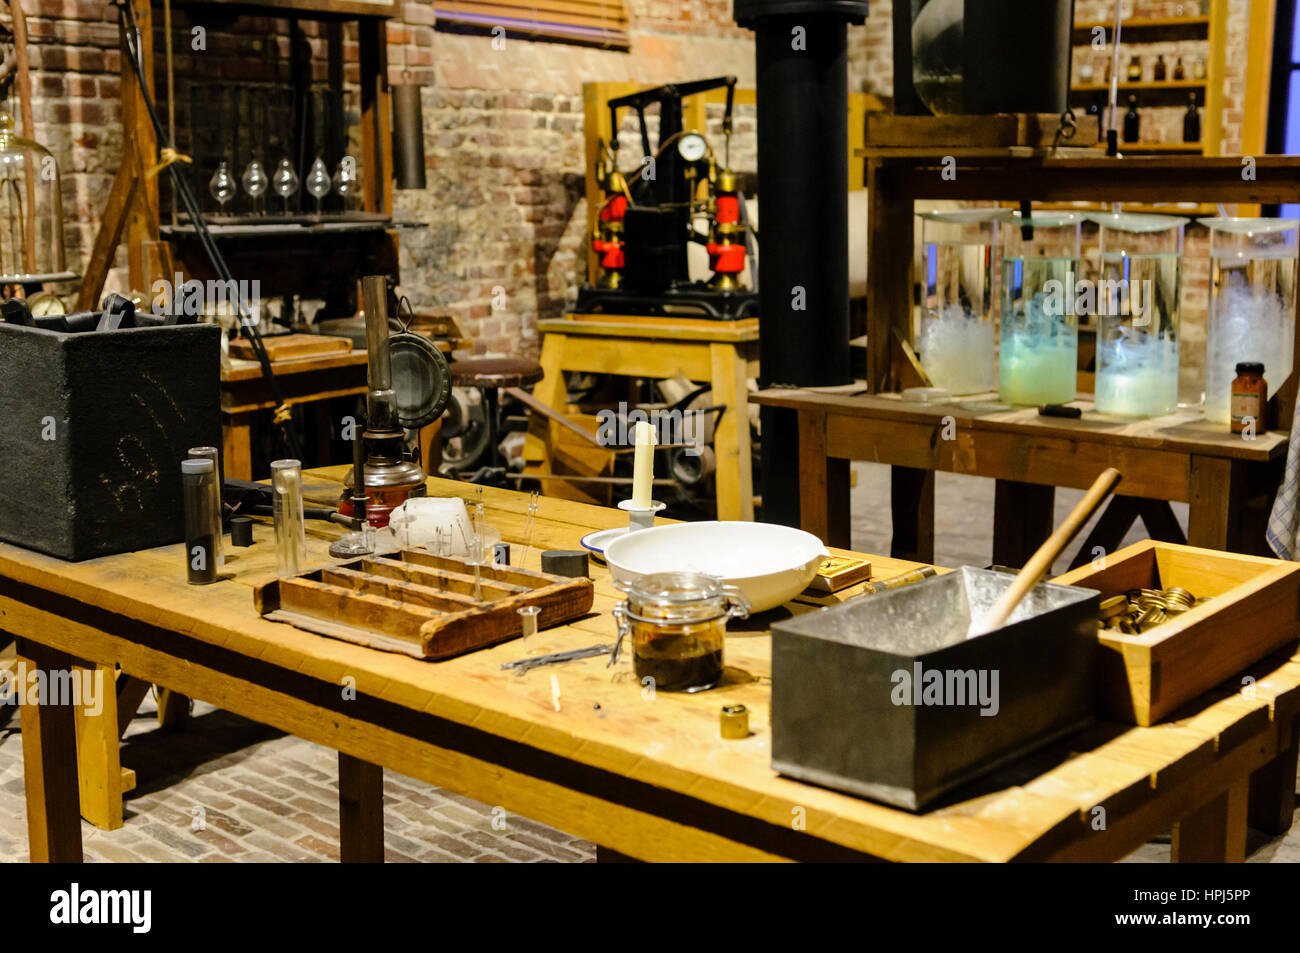 Experimental lightbulbs on a workbench in the lightbulb laboratory, Philips Museum, Eindhoven - Stock Image